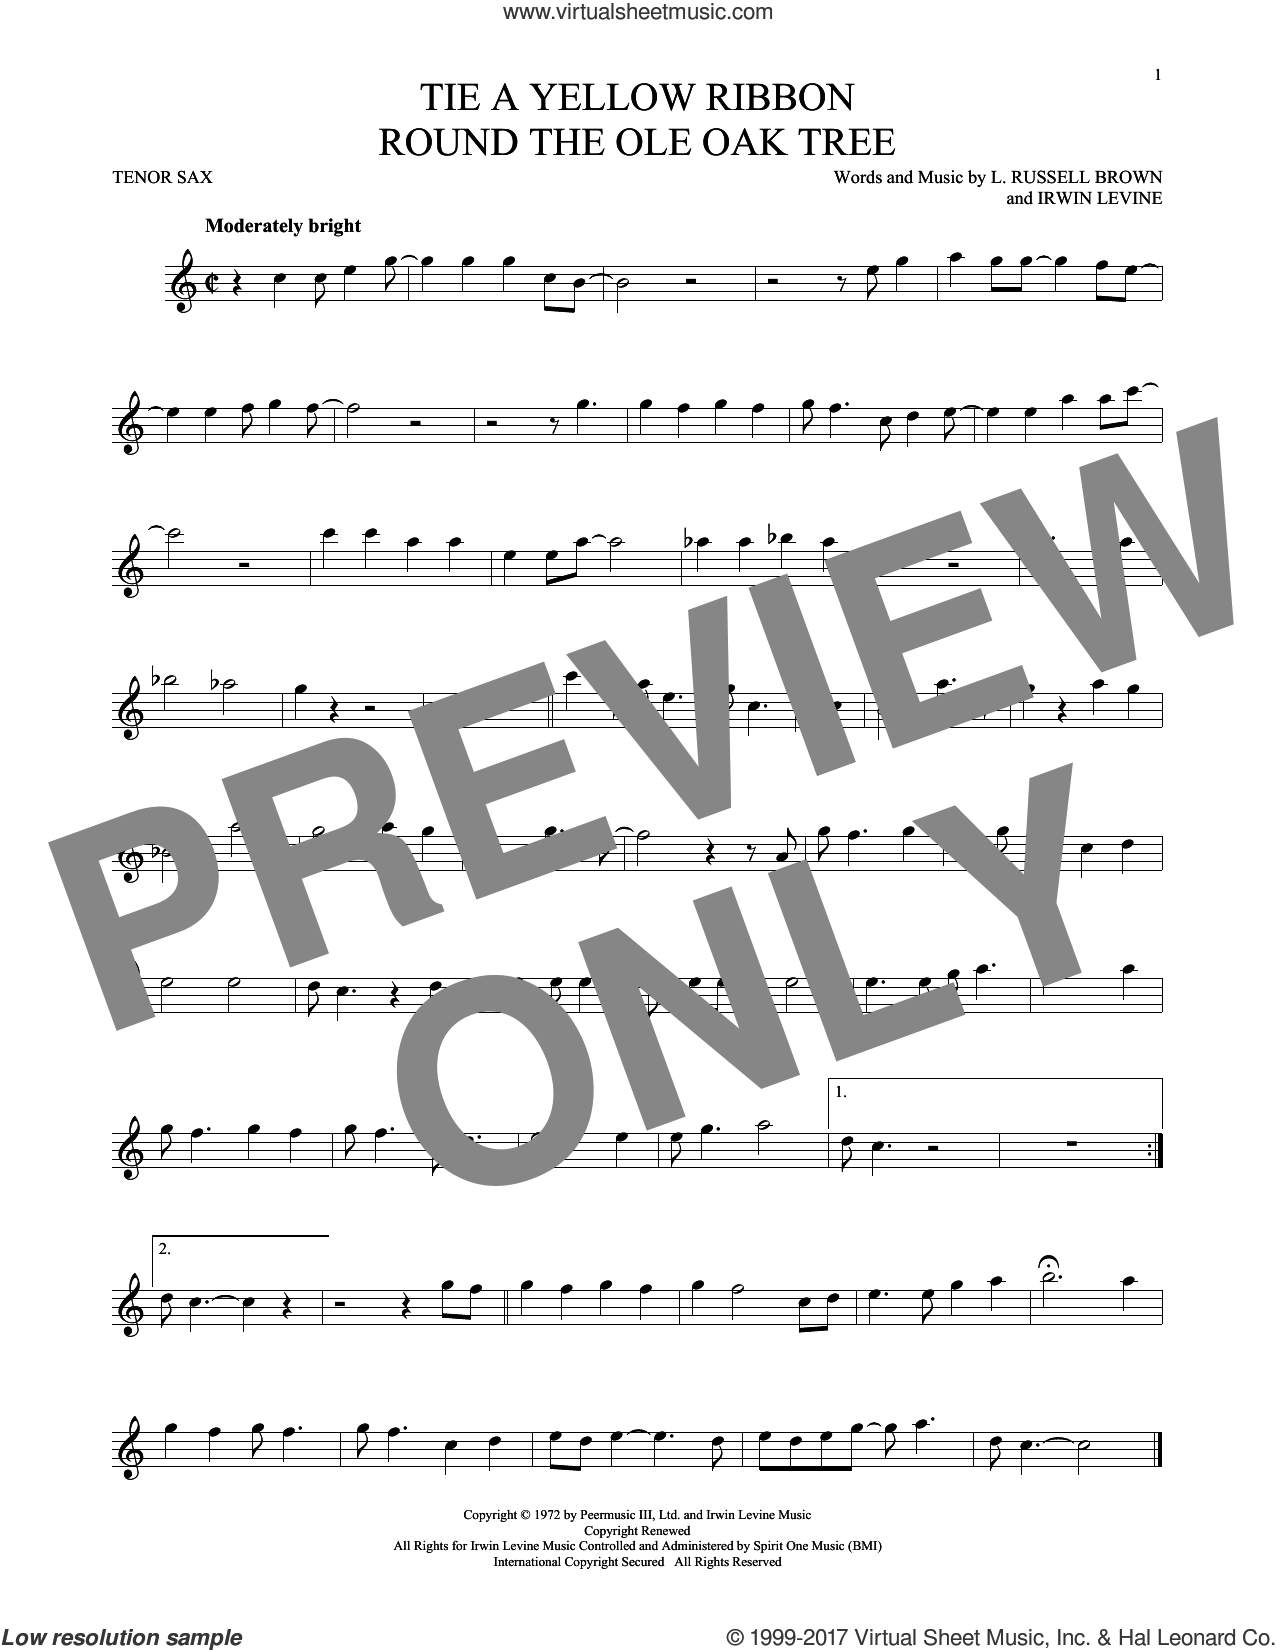 Tie A Yellow Ribbon Round The Ole Oak Tree sheet music for tenor saxophone solo by Dawn featuring Tony Orlando, Irwin Levine and L. Russell Brown, intermediate skill level